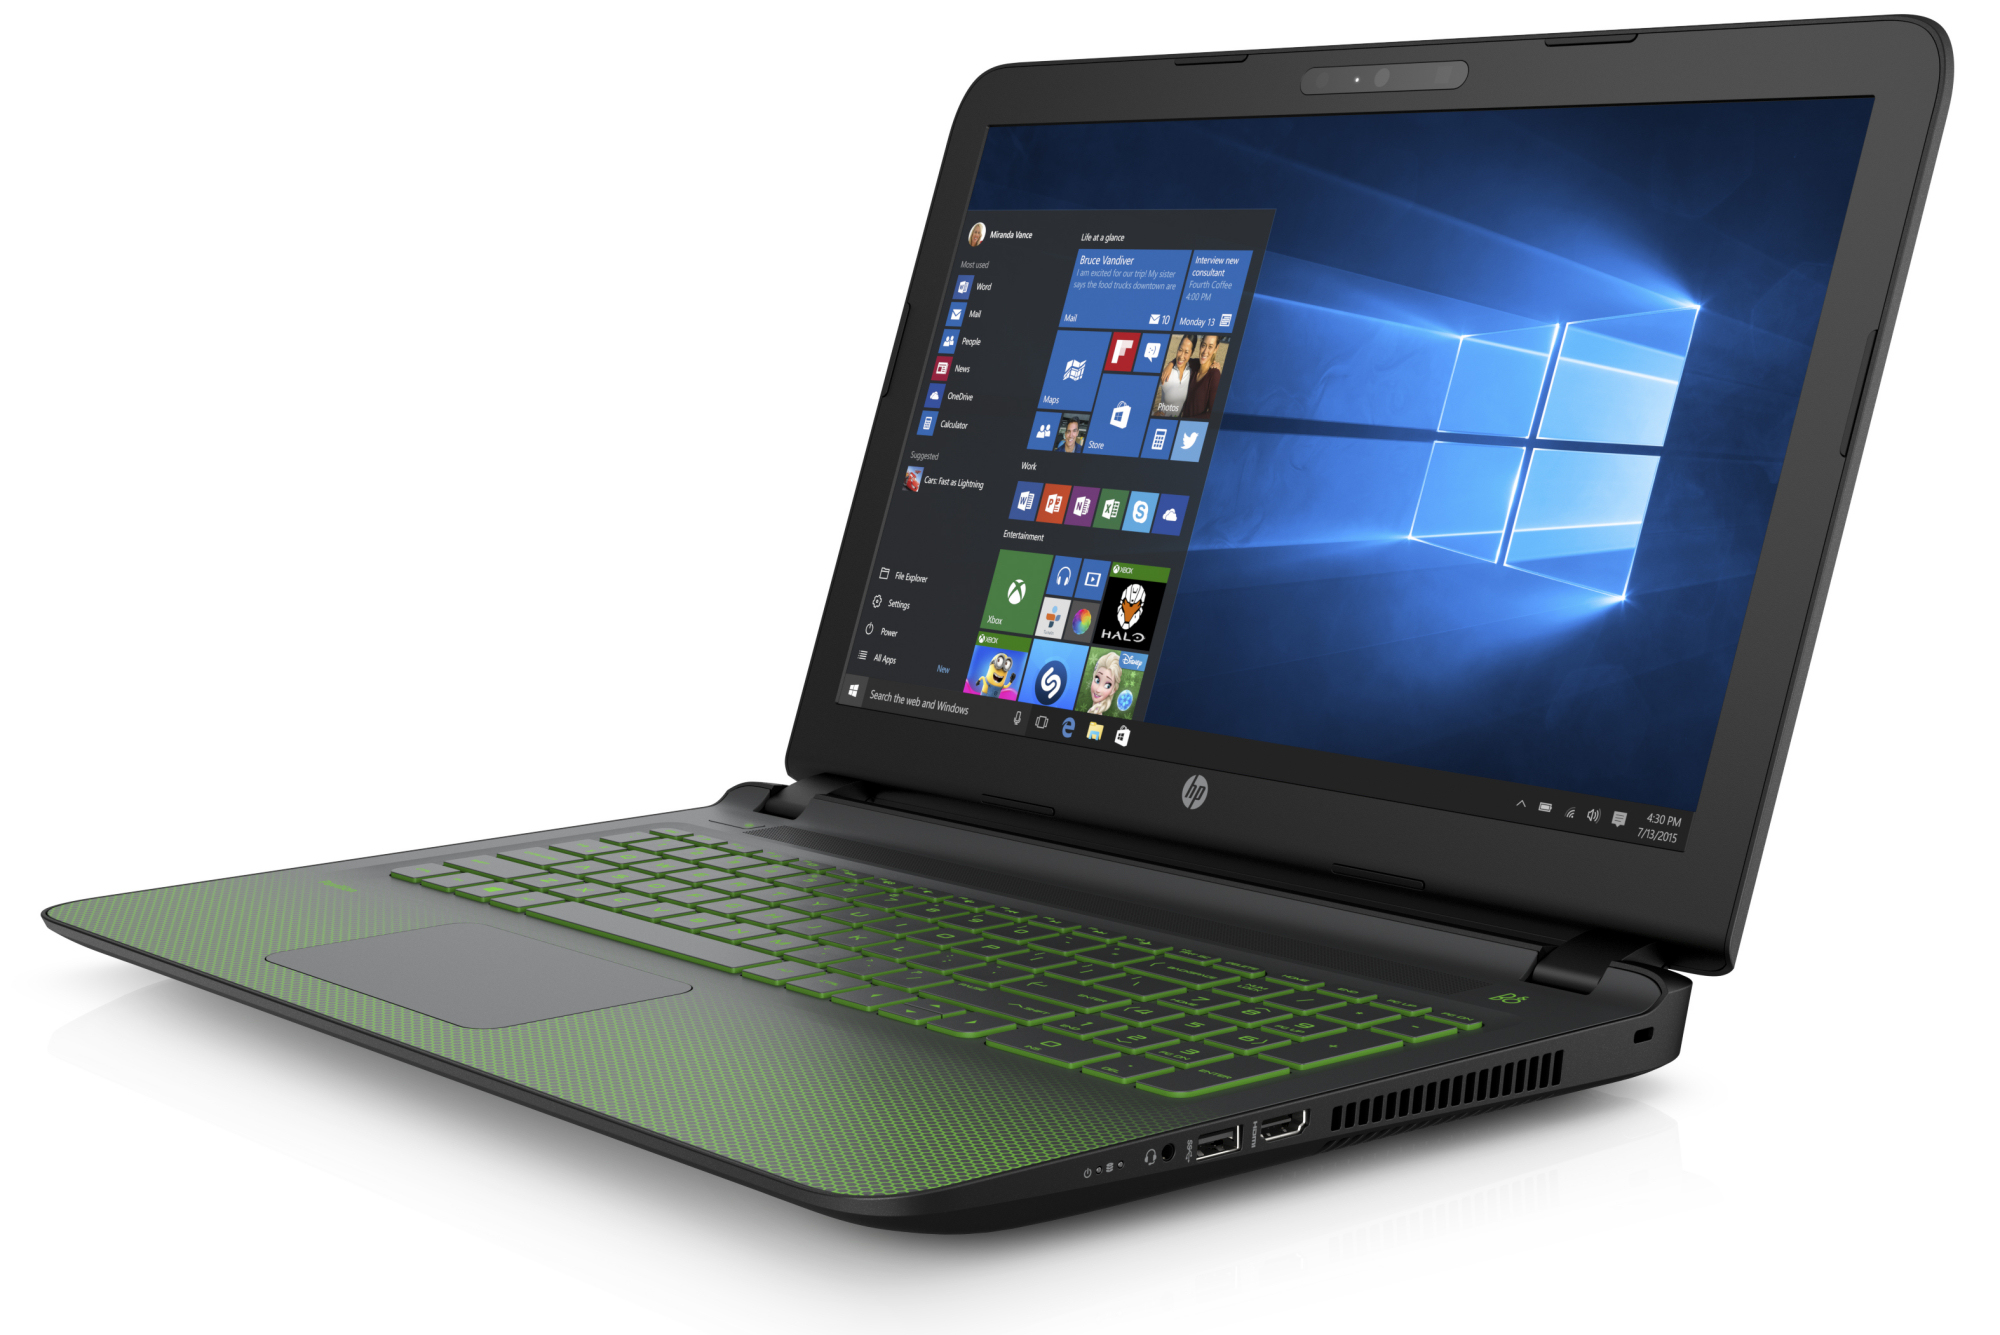 hp pavilion 15 i7 6700hq gtx 950m notebook review. Black Bedroom Furniture Sets. Home Design Ideas